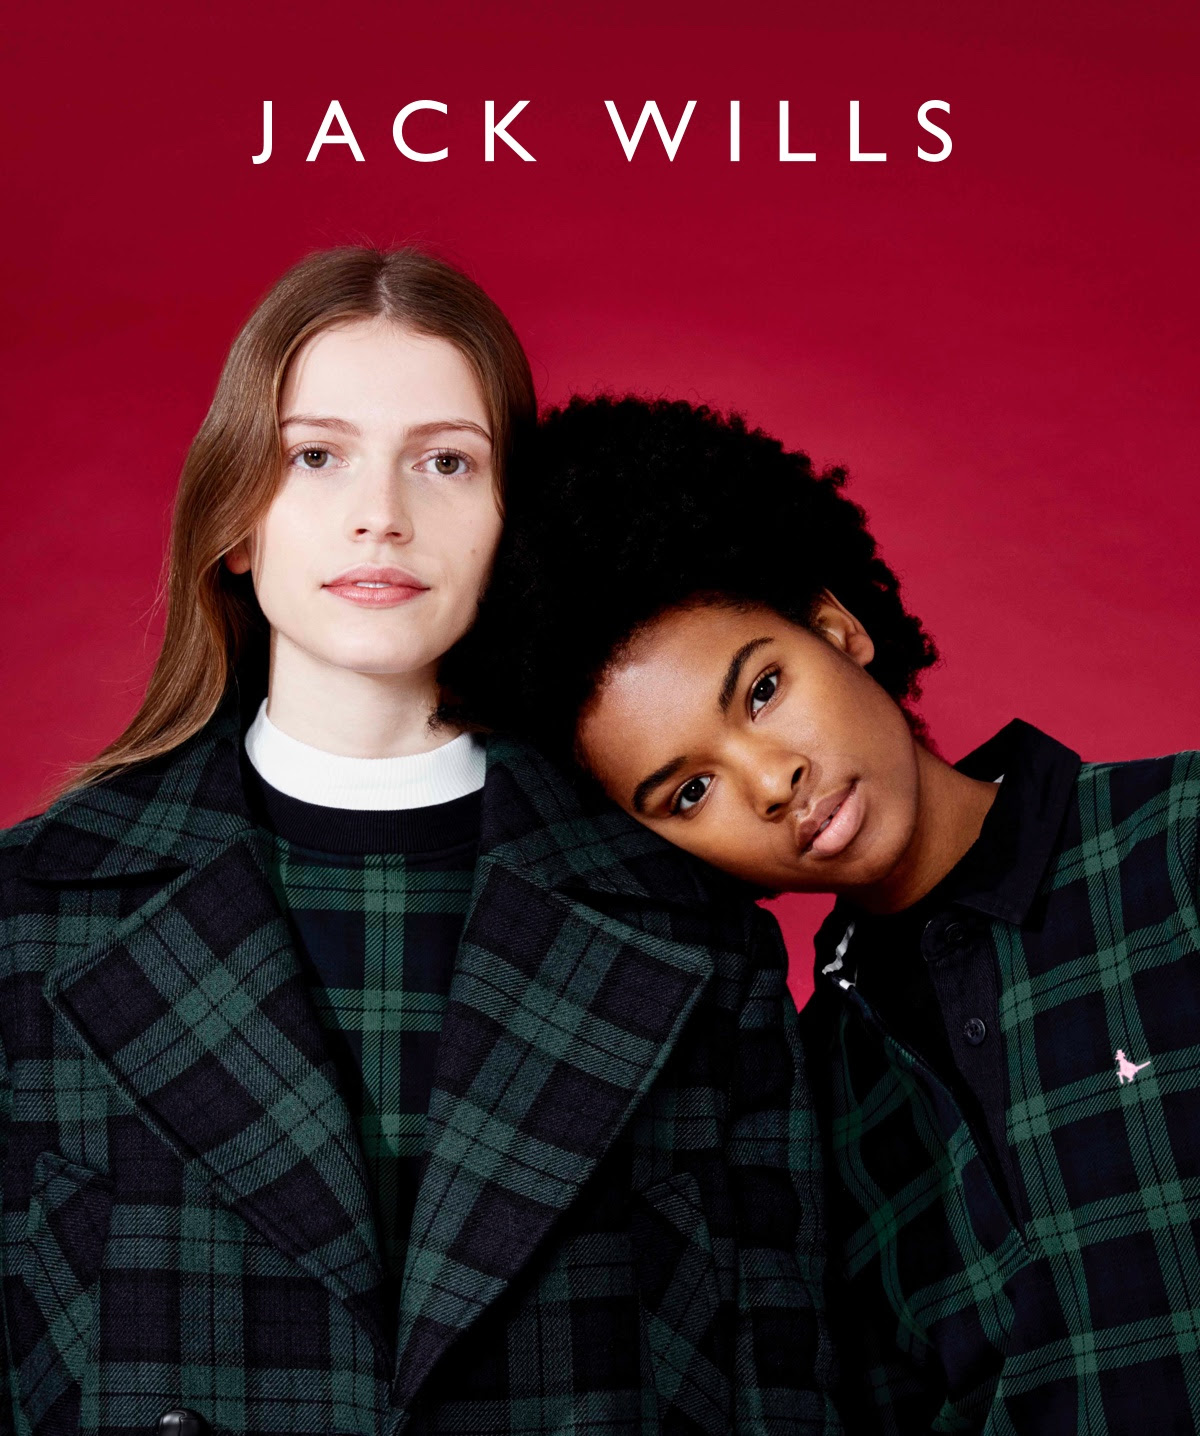 Jack Wills - Not sure what to buy her?